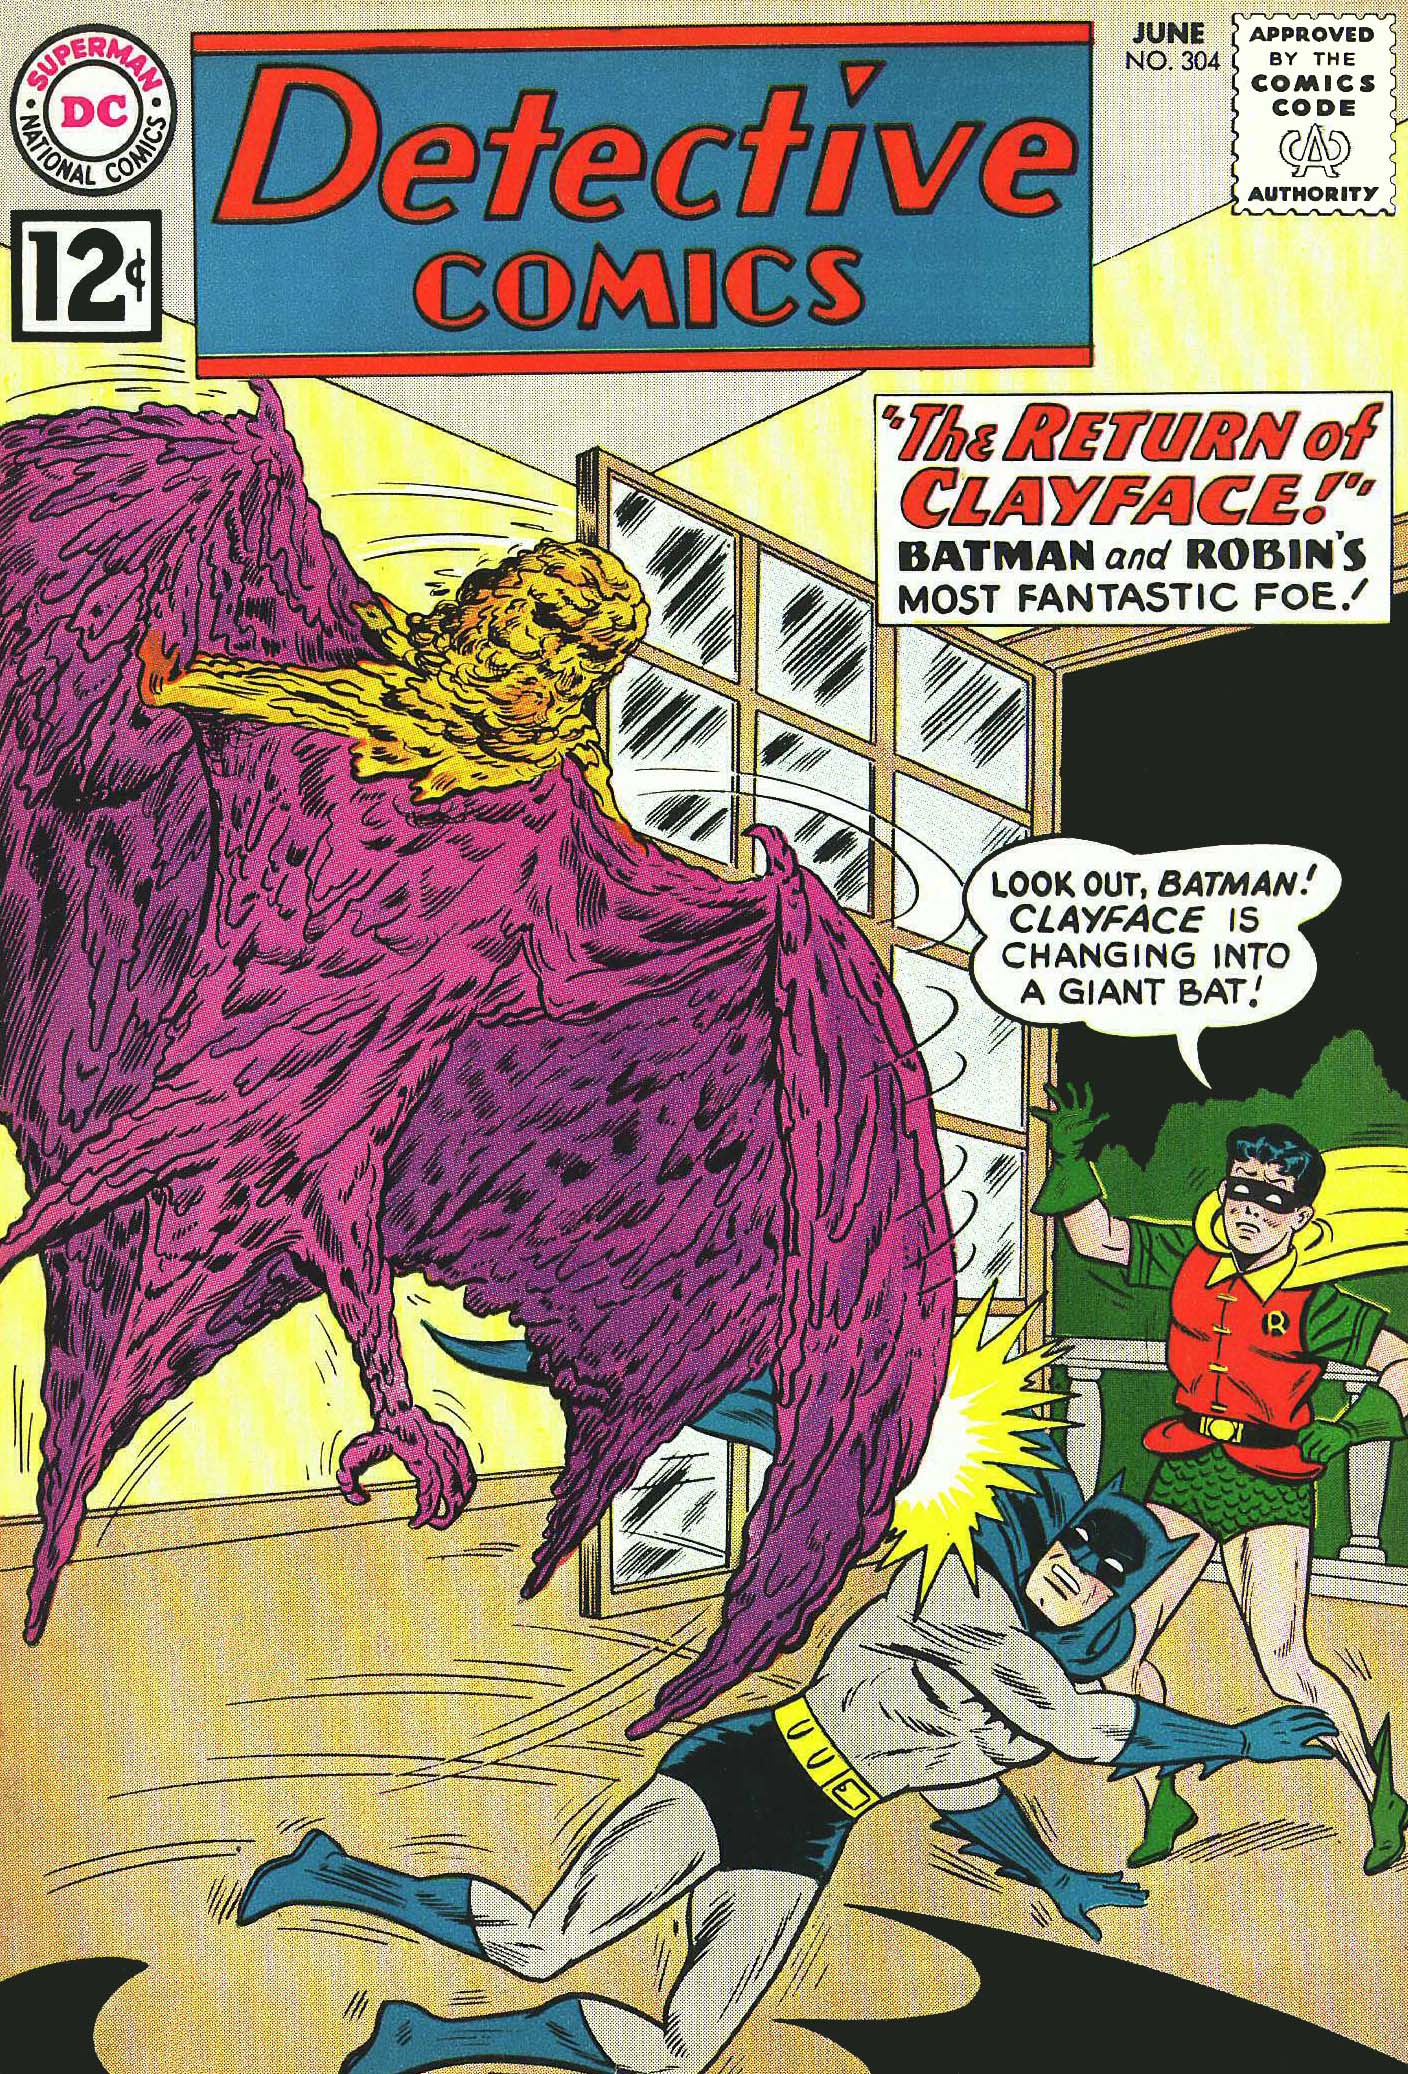 Cover for detective comics 304 1962